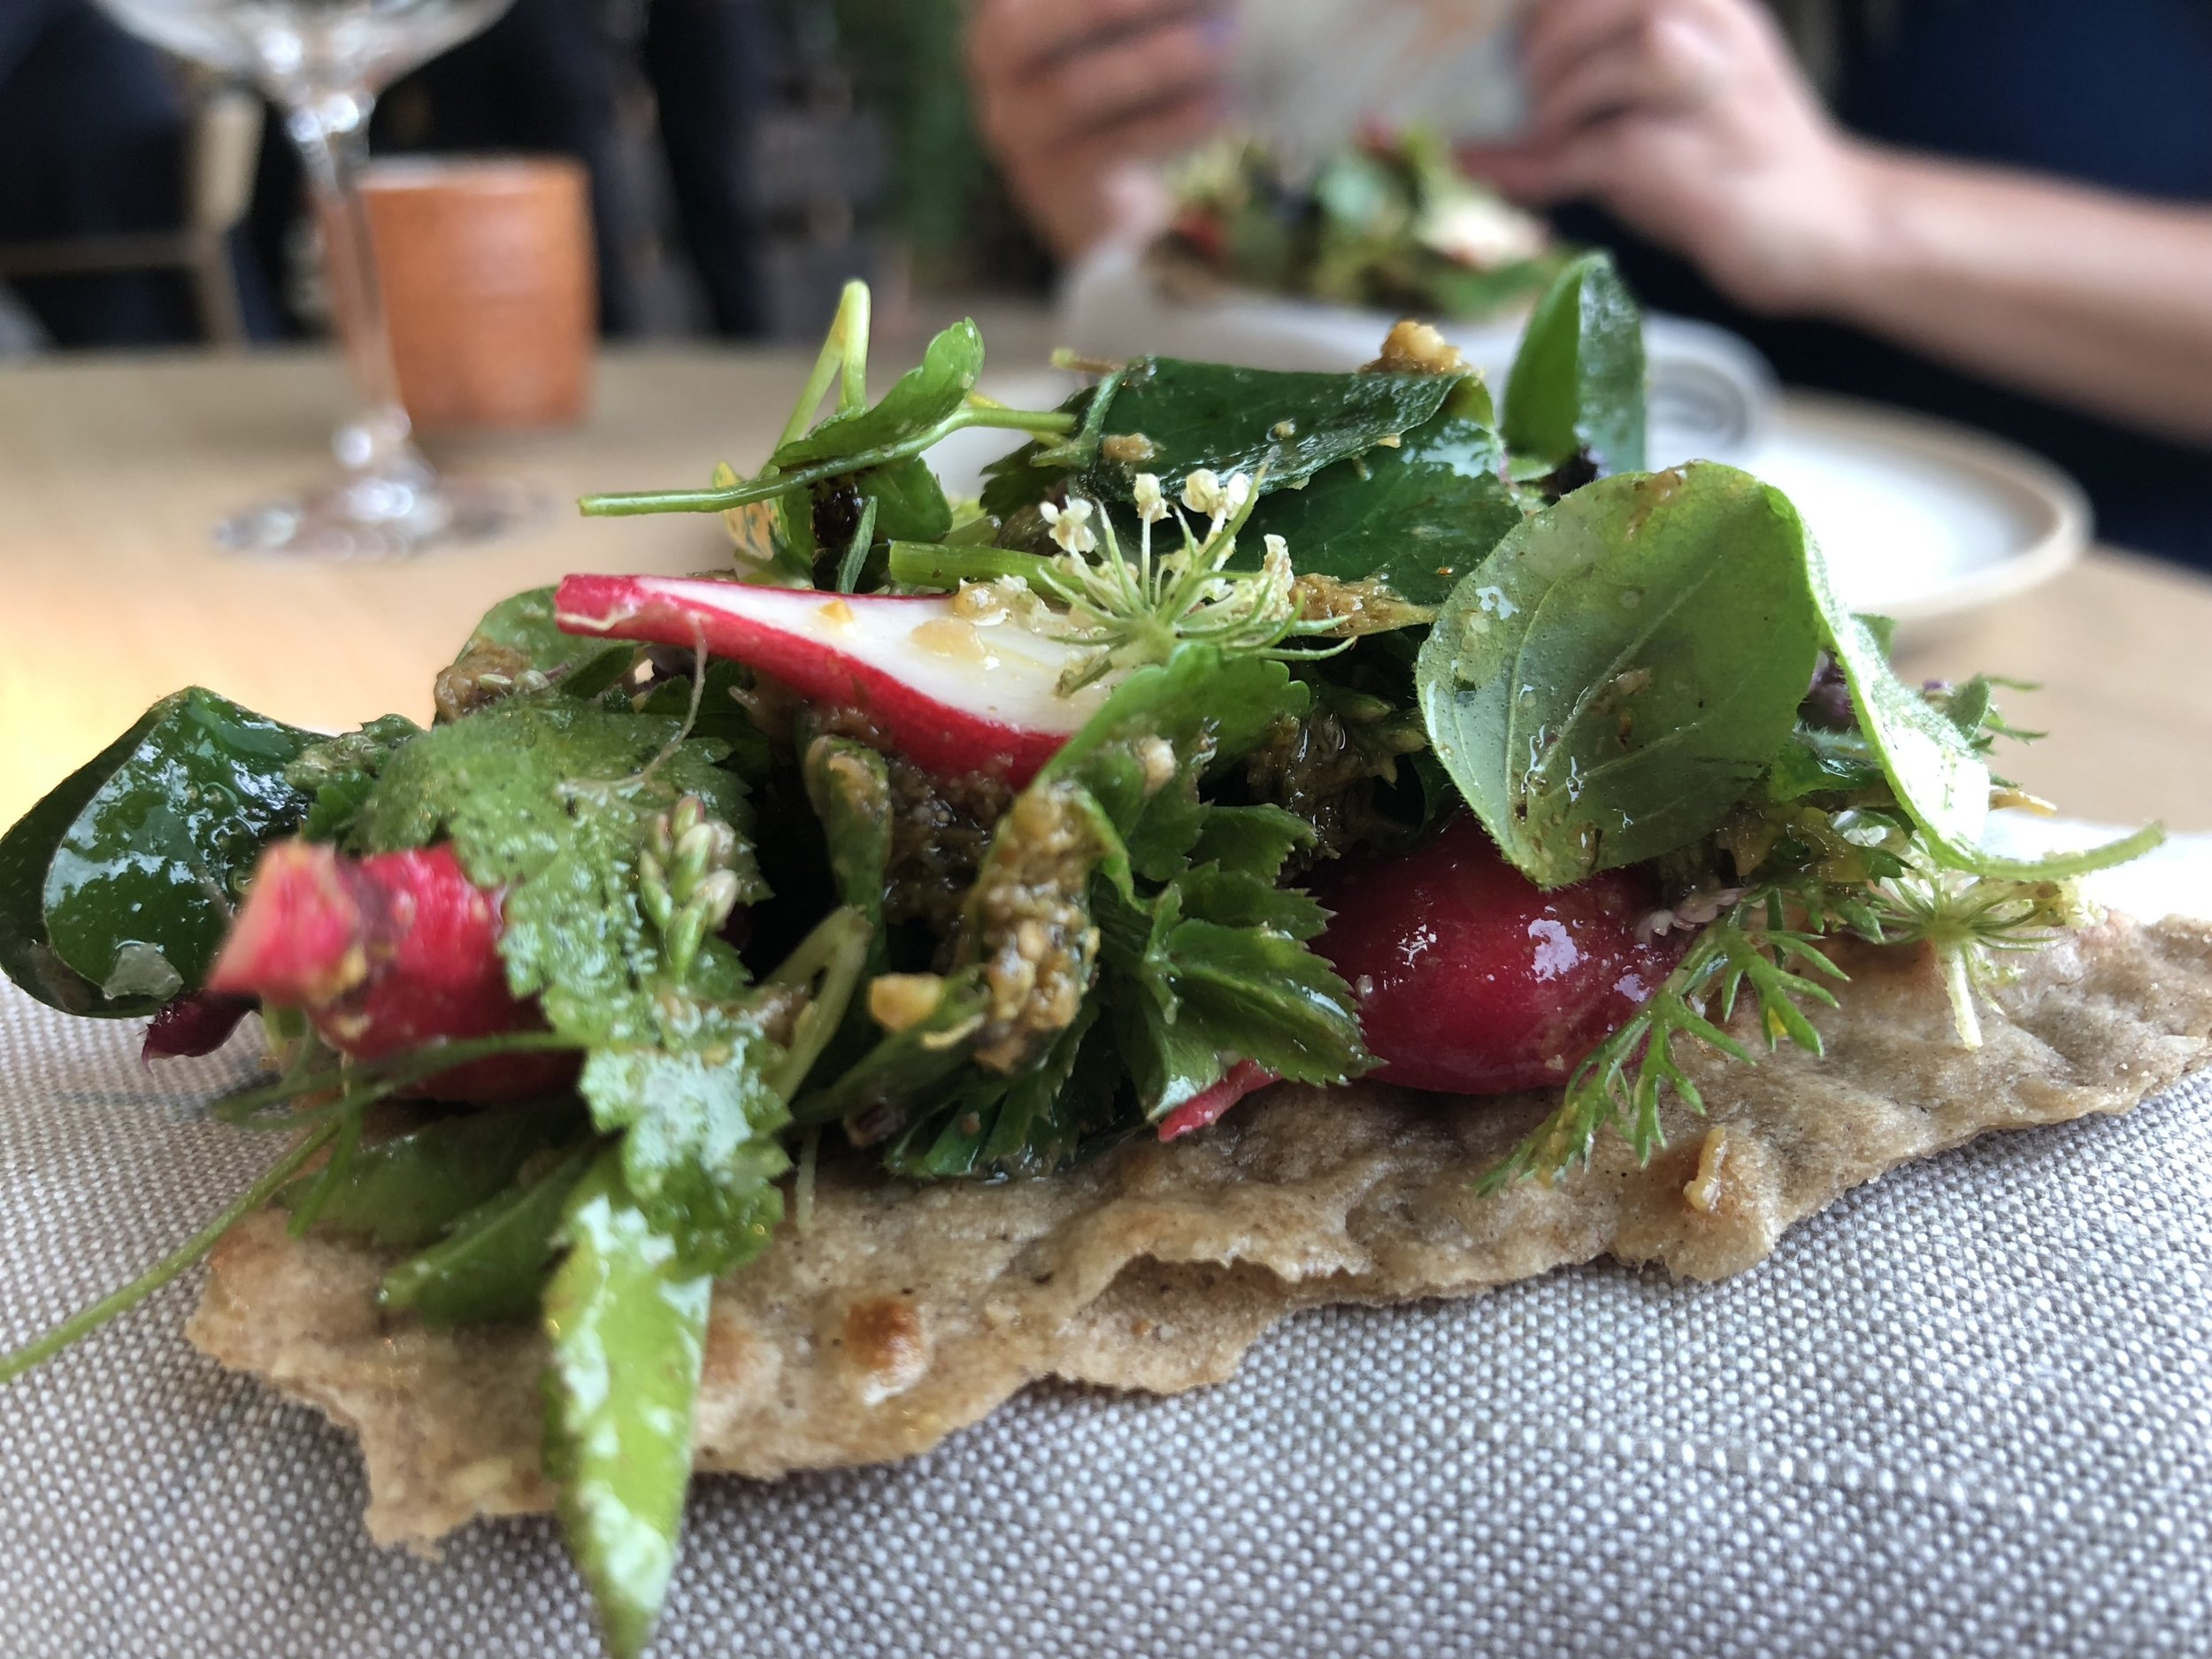 Umami Flatbread - This dish was special because it looked so simple, yet had maybe the most complex flavor of the night. The mustard greens and a chili spice that the team had brought back from their trip to Tulum both added a nice kick to the cracker, radishes, and fruit. Umami to the max.